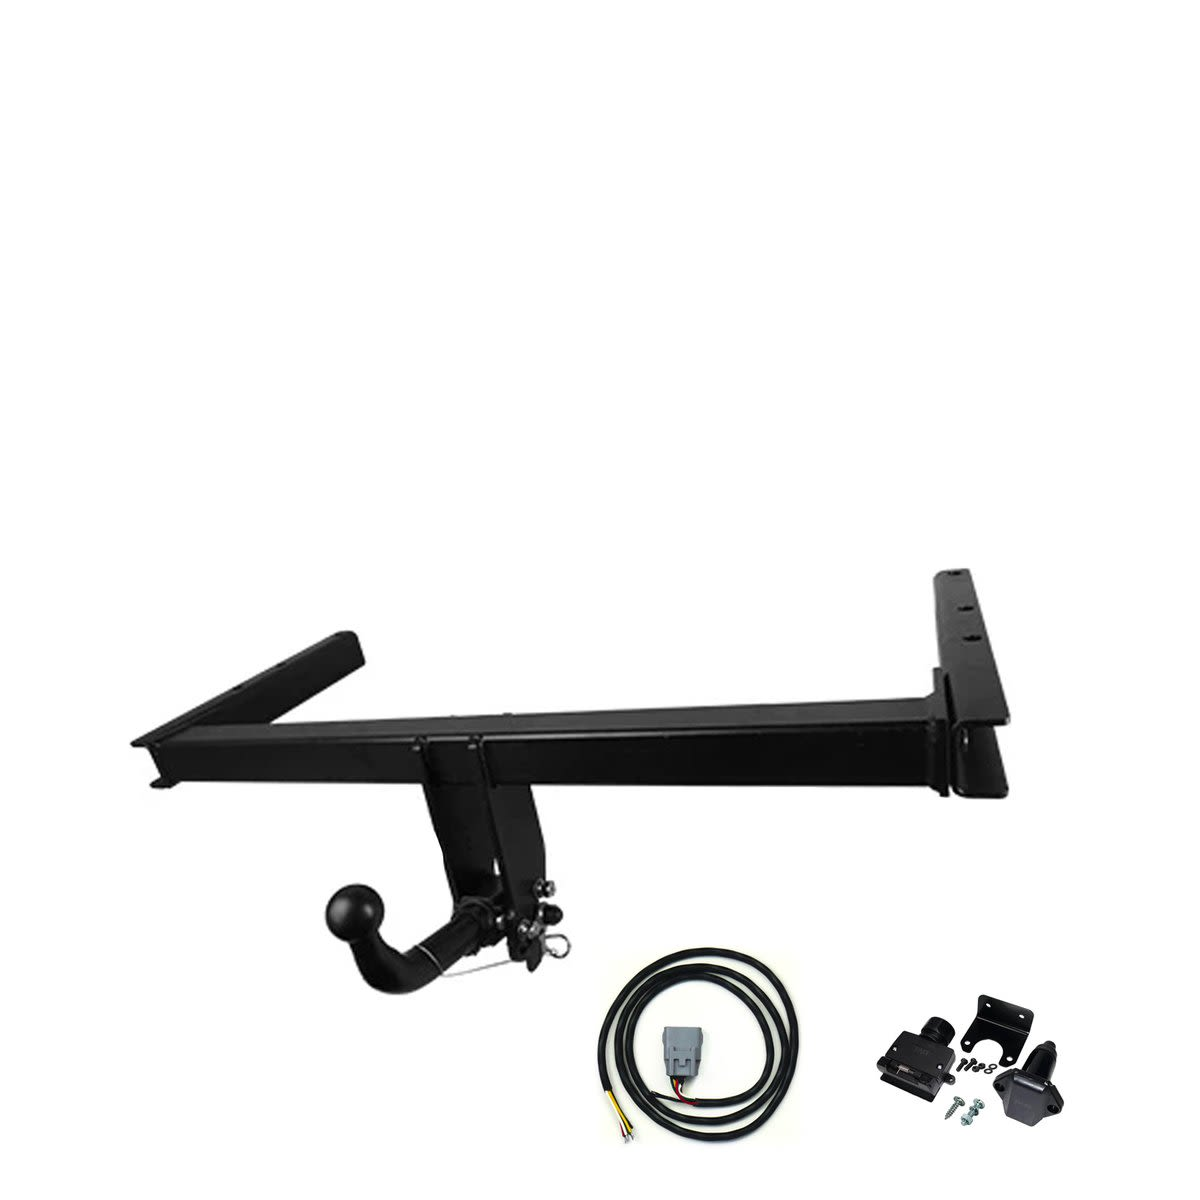 TAG Towbars European Style Tongue to suit Fiat 500X (08/2015 - on)